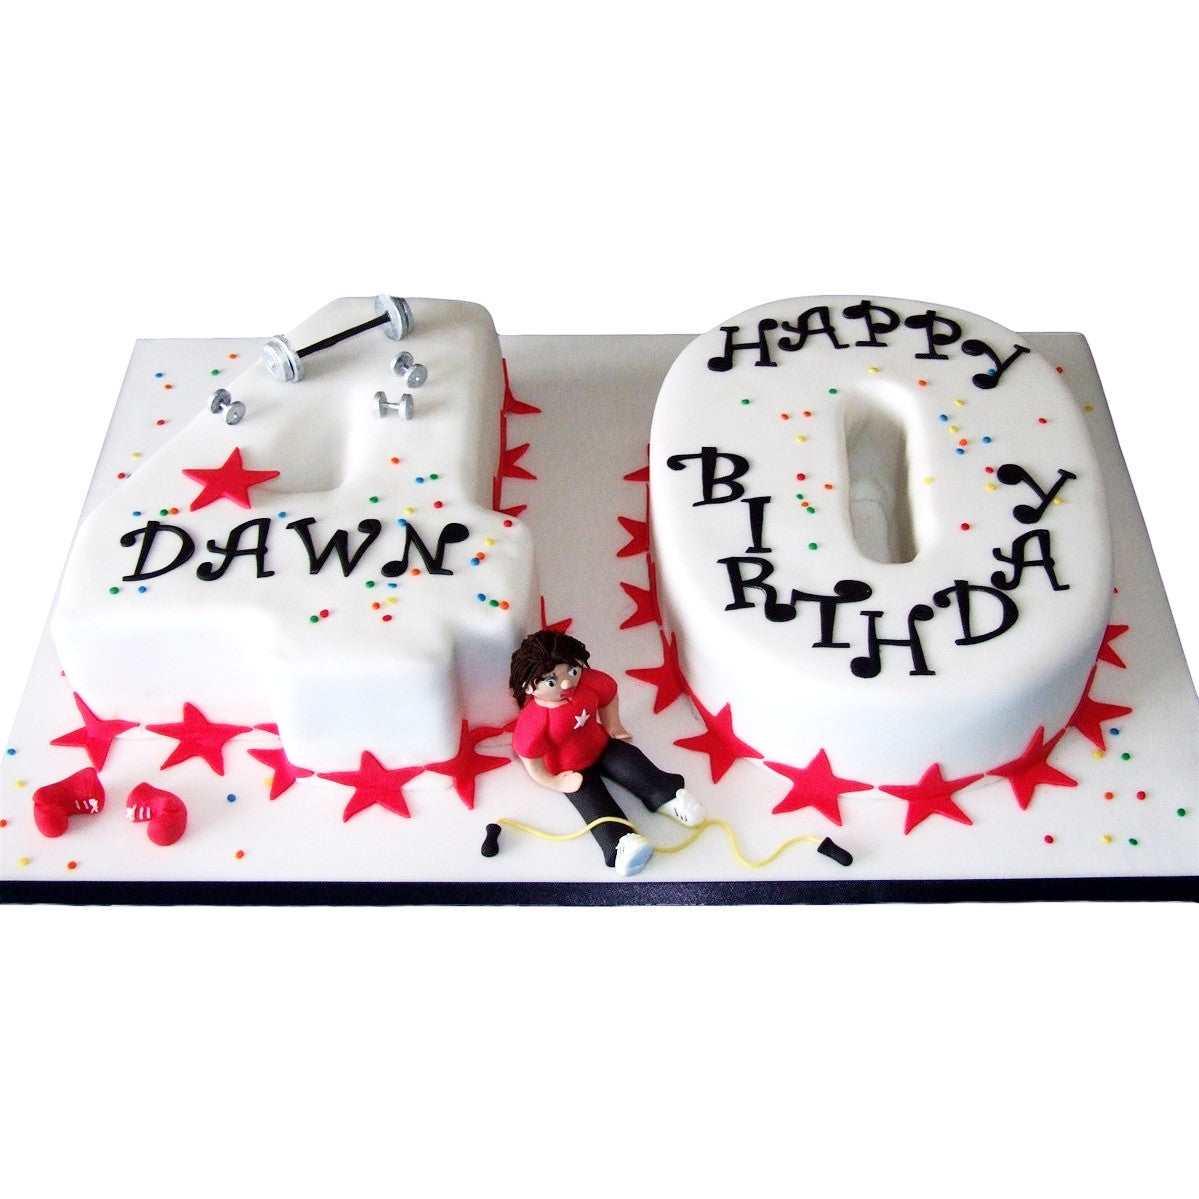 Super 40Th Birthday Cake Buy Online Free Uk Delivery New Cakes Funny Birthday Cards Online Elaedamsfinfo